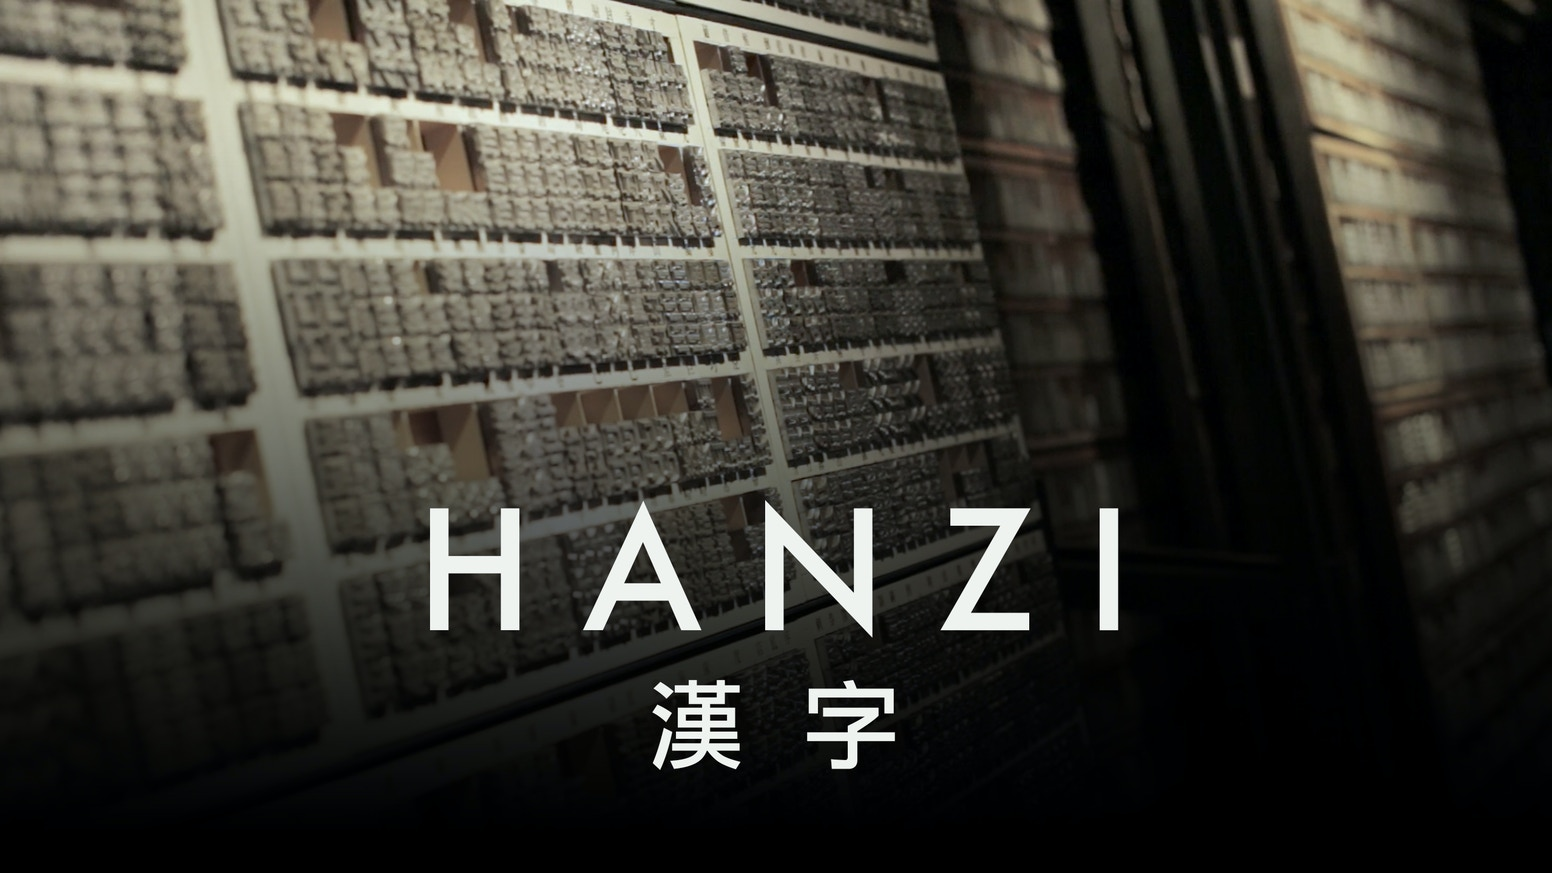 Hanzi - A Documentary on Chinese Typography